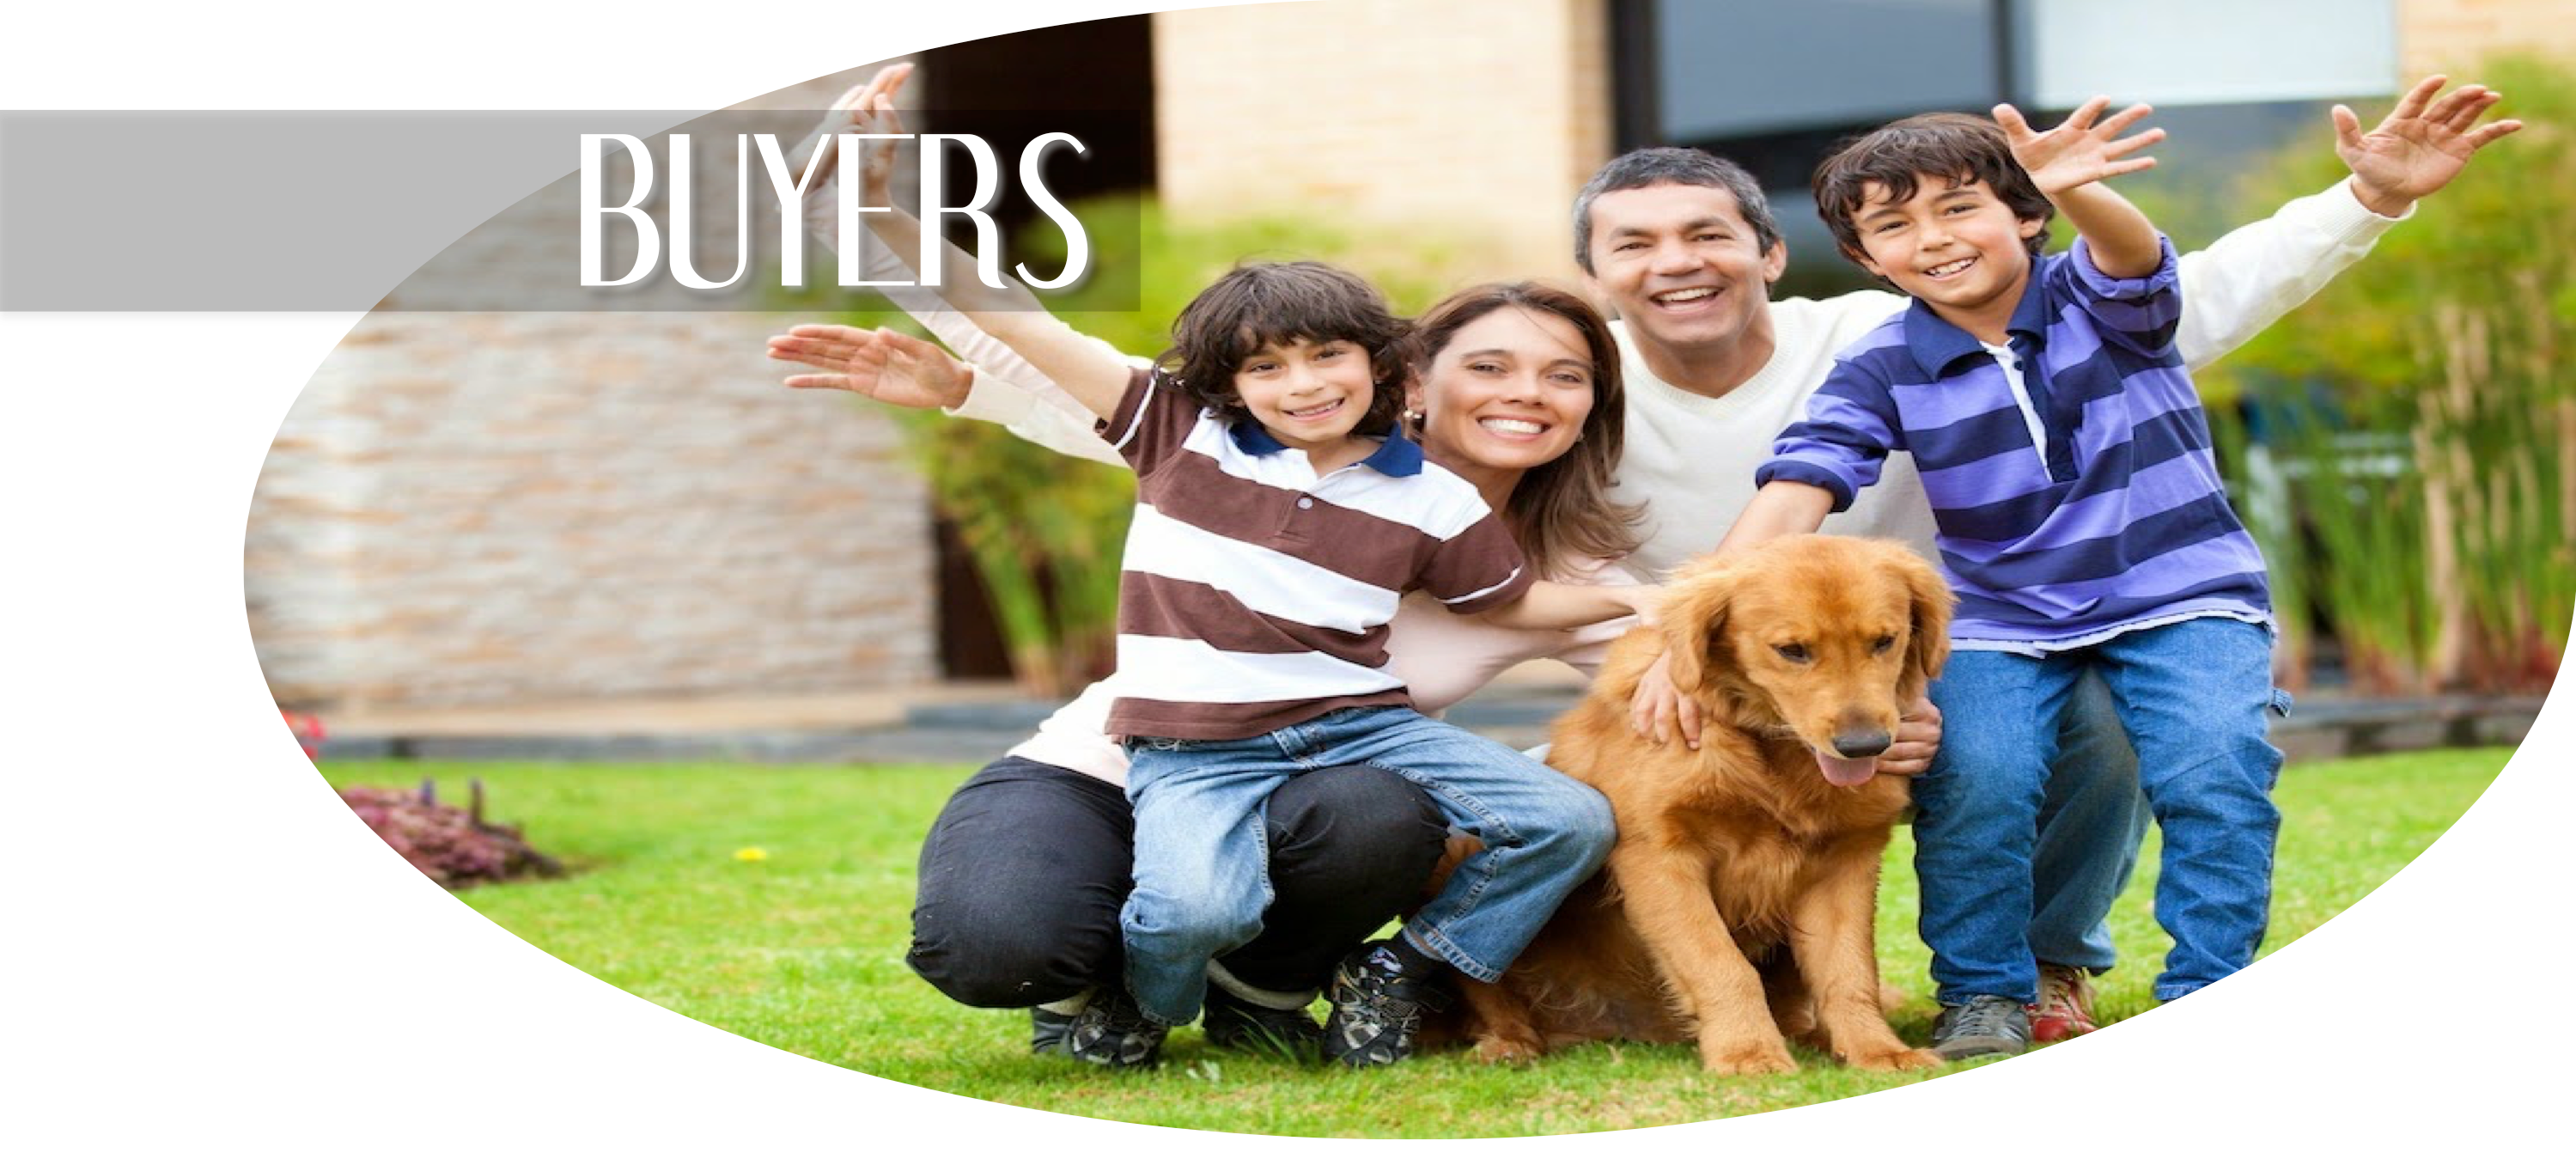 BuyersMontgomery Property Group